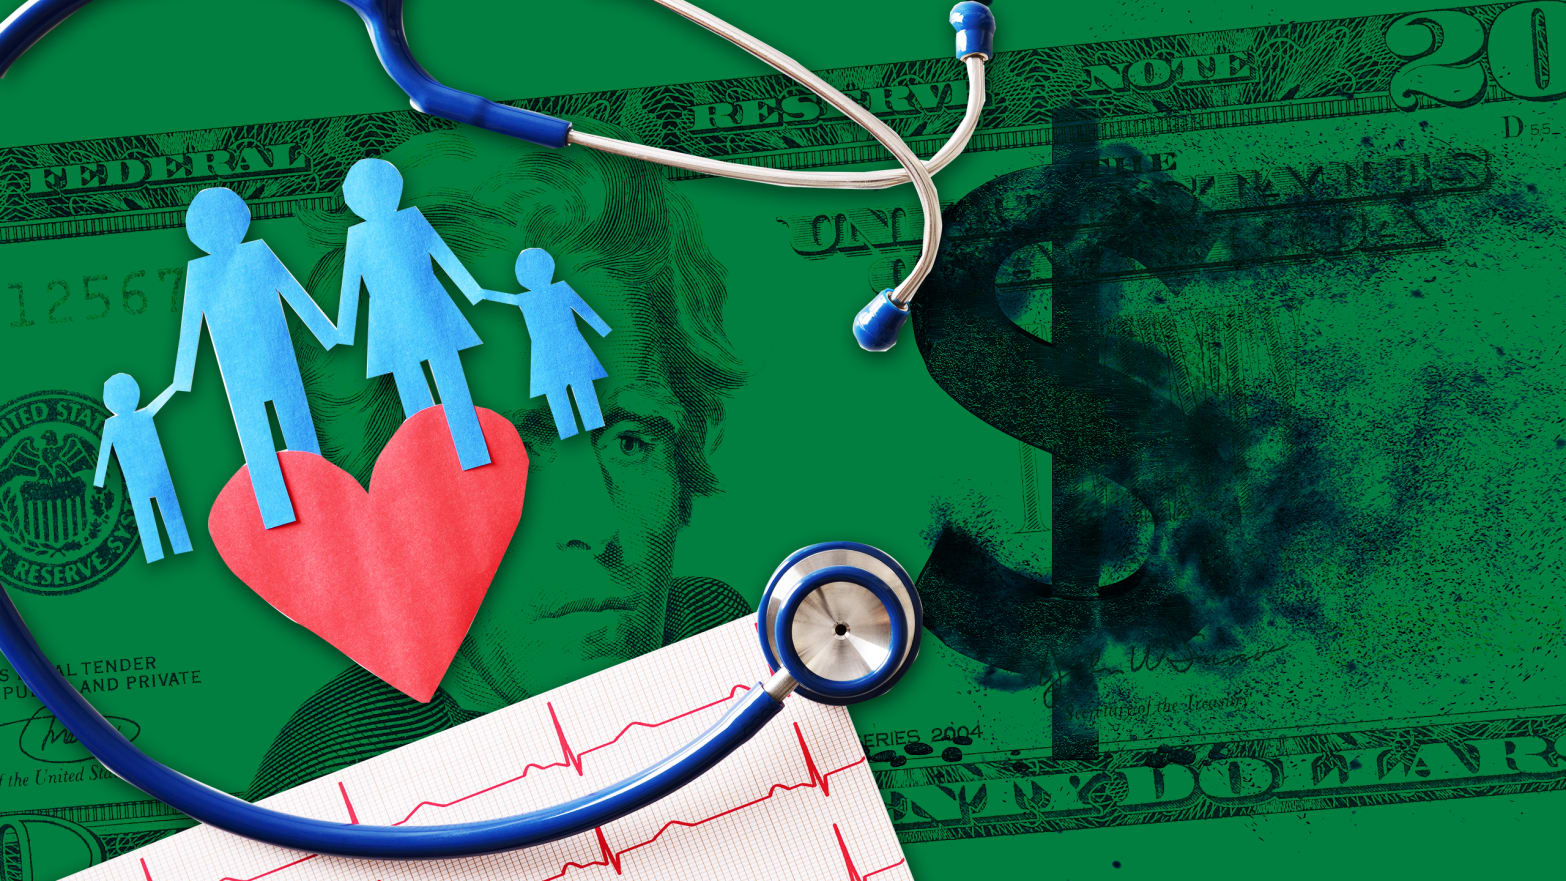 green dollar bill background with blue paper cutout family holding red heart and stethoscope and heart beats in foreground home visiting visit chicago primo center